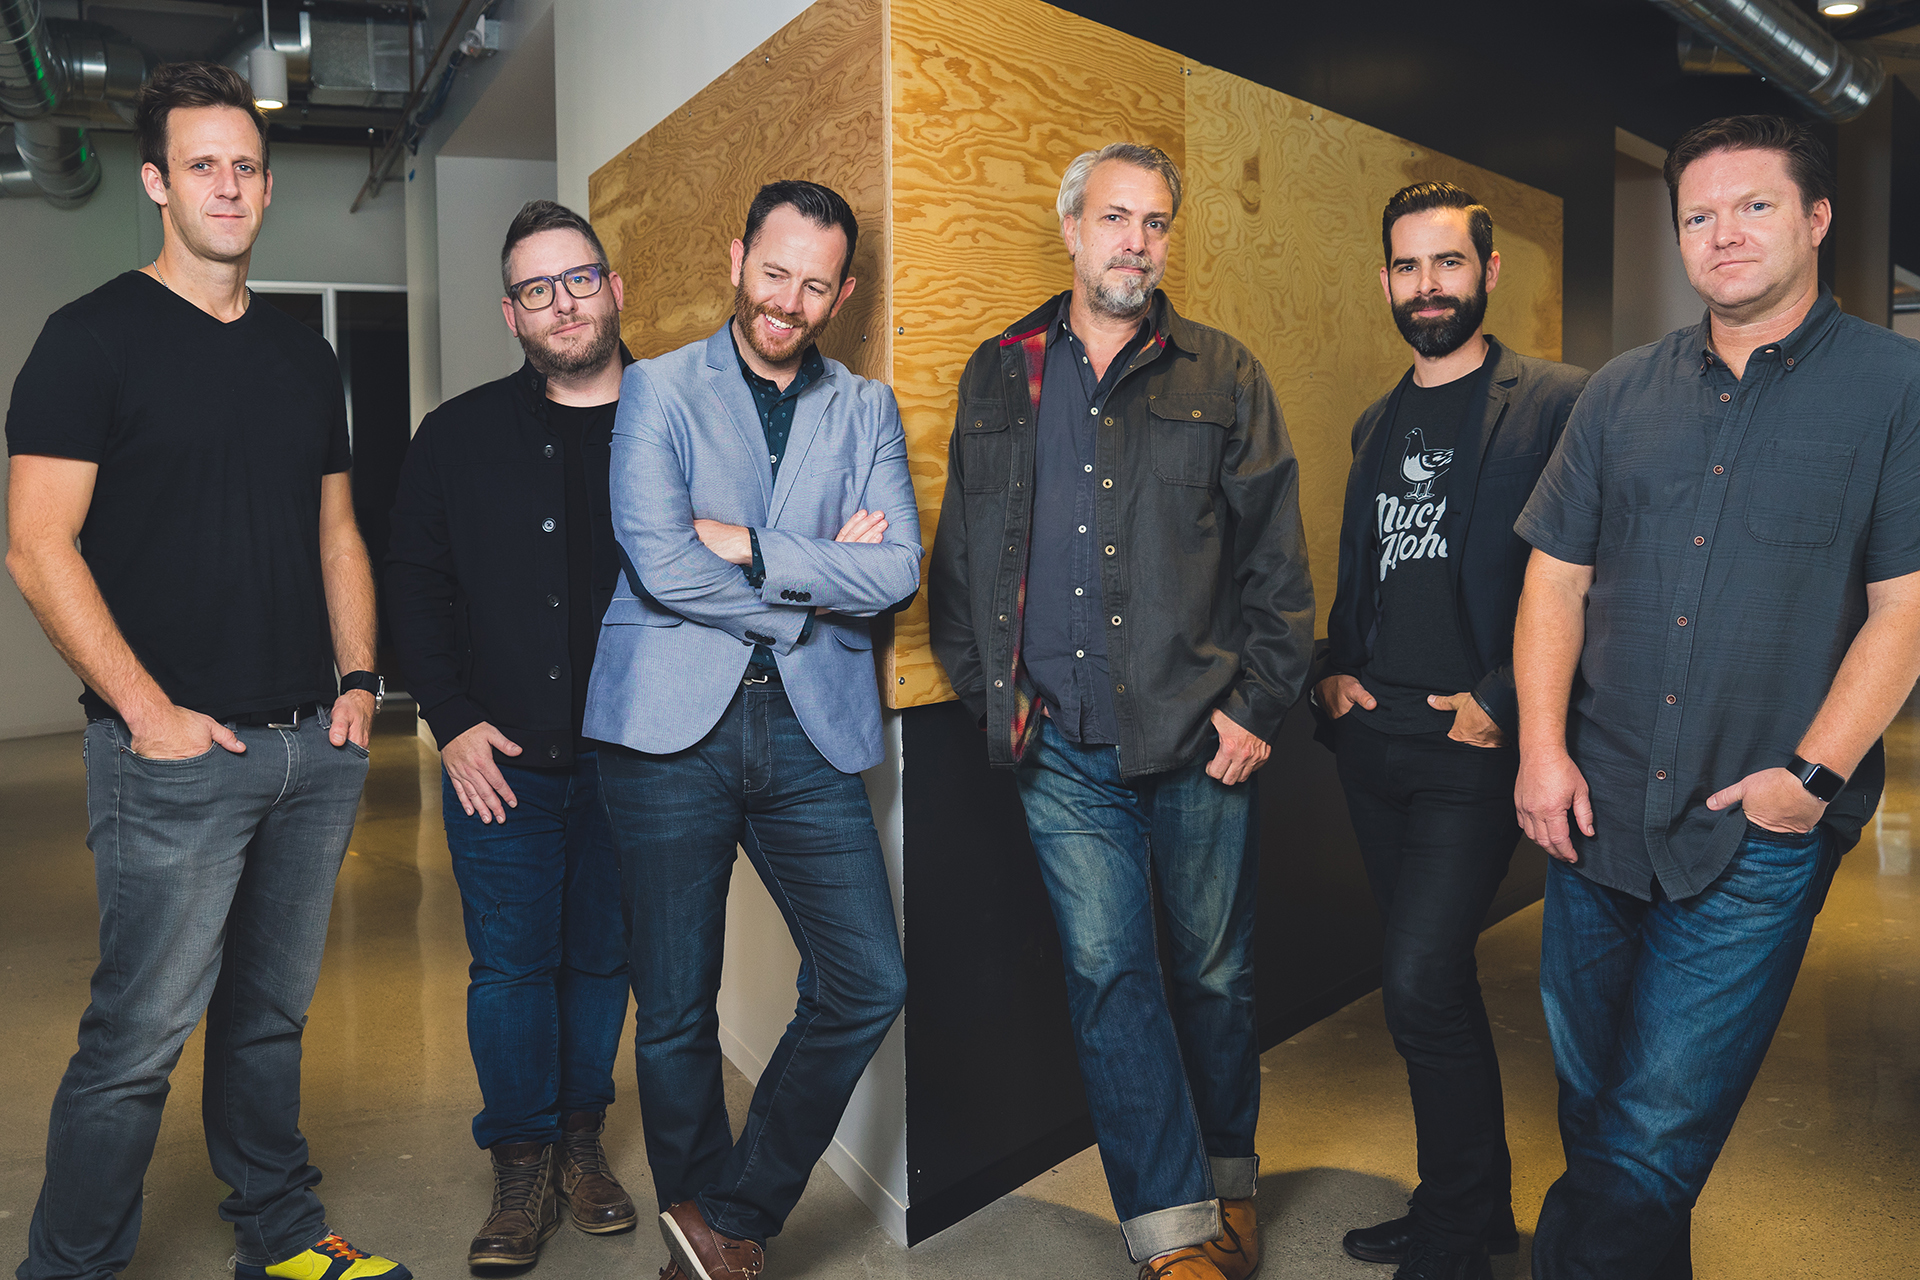 From L-R: Founder & CCO Zach Lyons, President & CSO Jeff Roach, SVP Media Tim Walsh, SVP Creative & ECD John Zegowitz, Founder & CEO James Schiefer, COO Dan Mickelsen. Not shown: Founder & SVP Business Affairs Ken Anderson. (Photo: Business Wire)